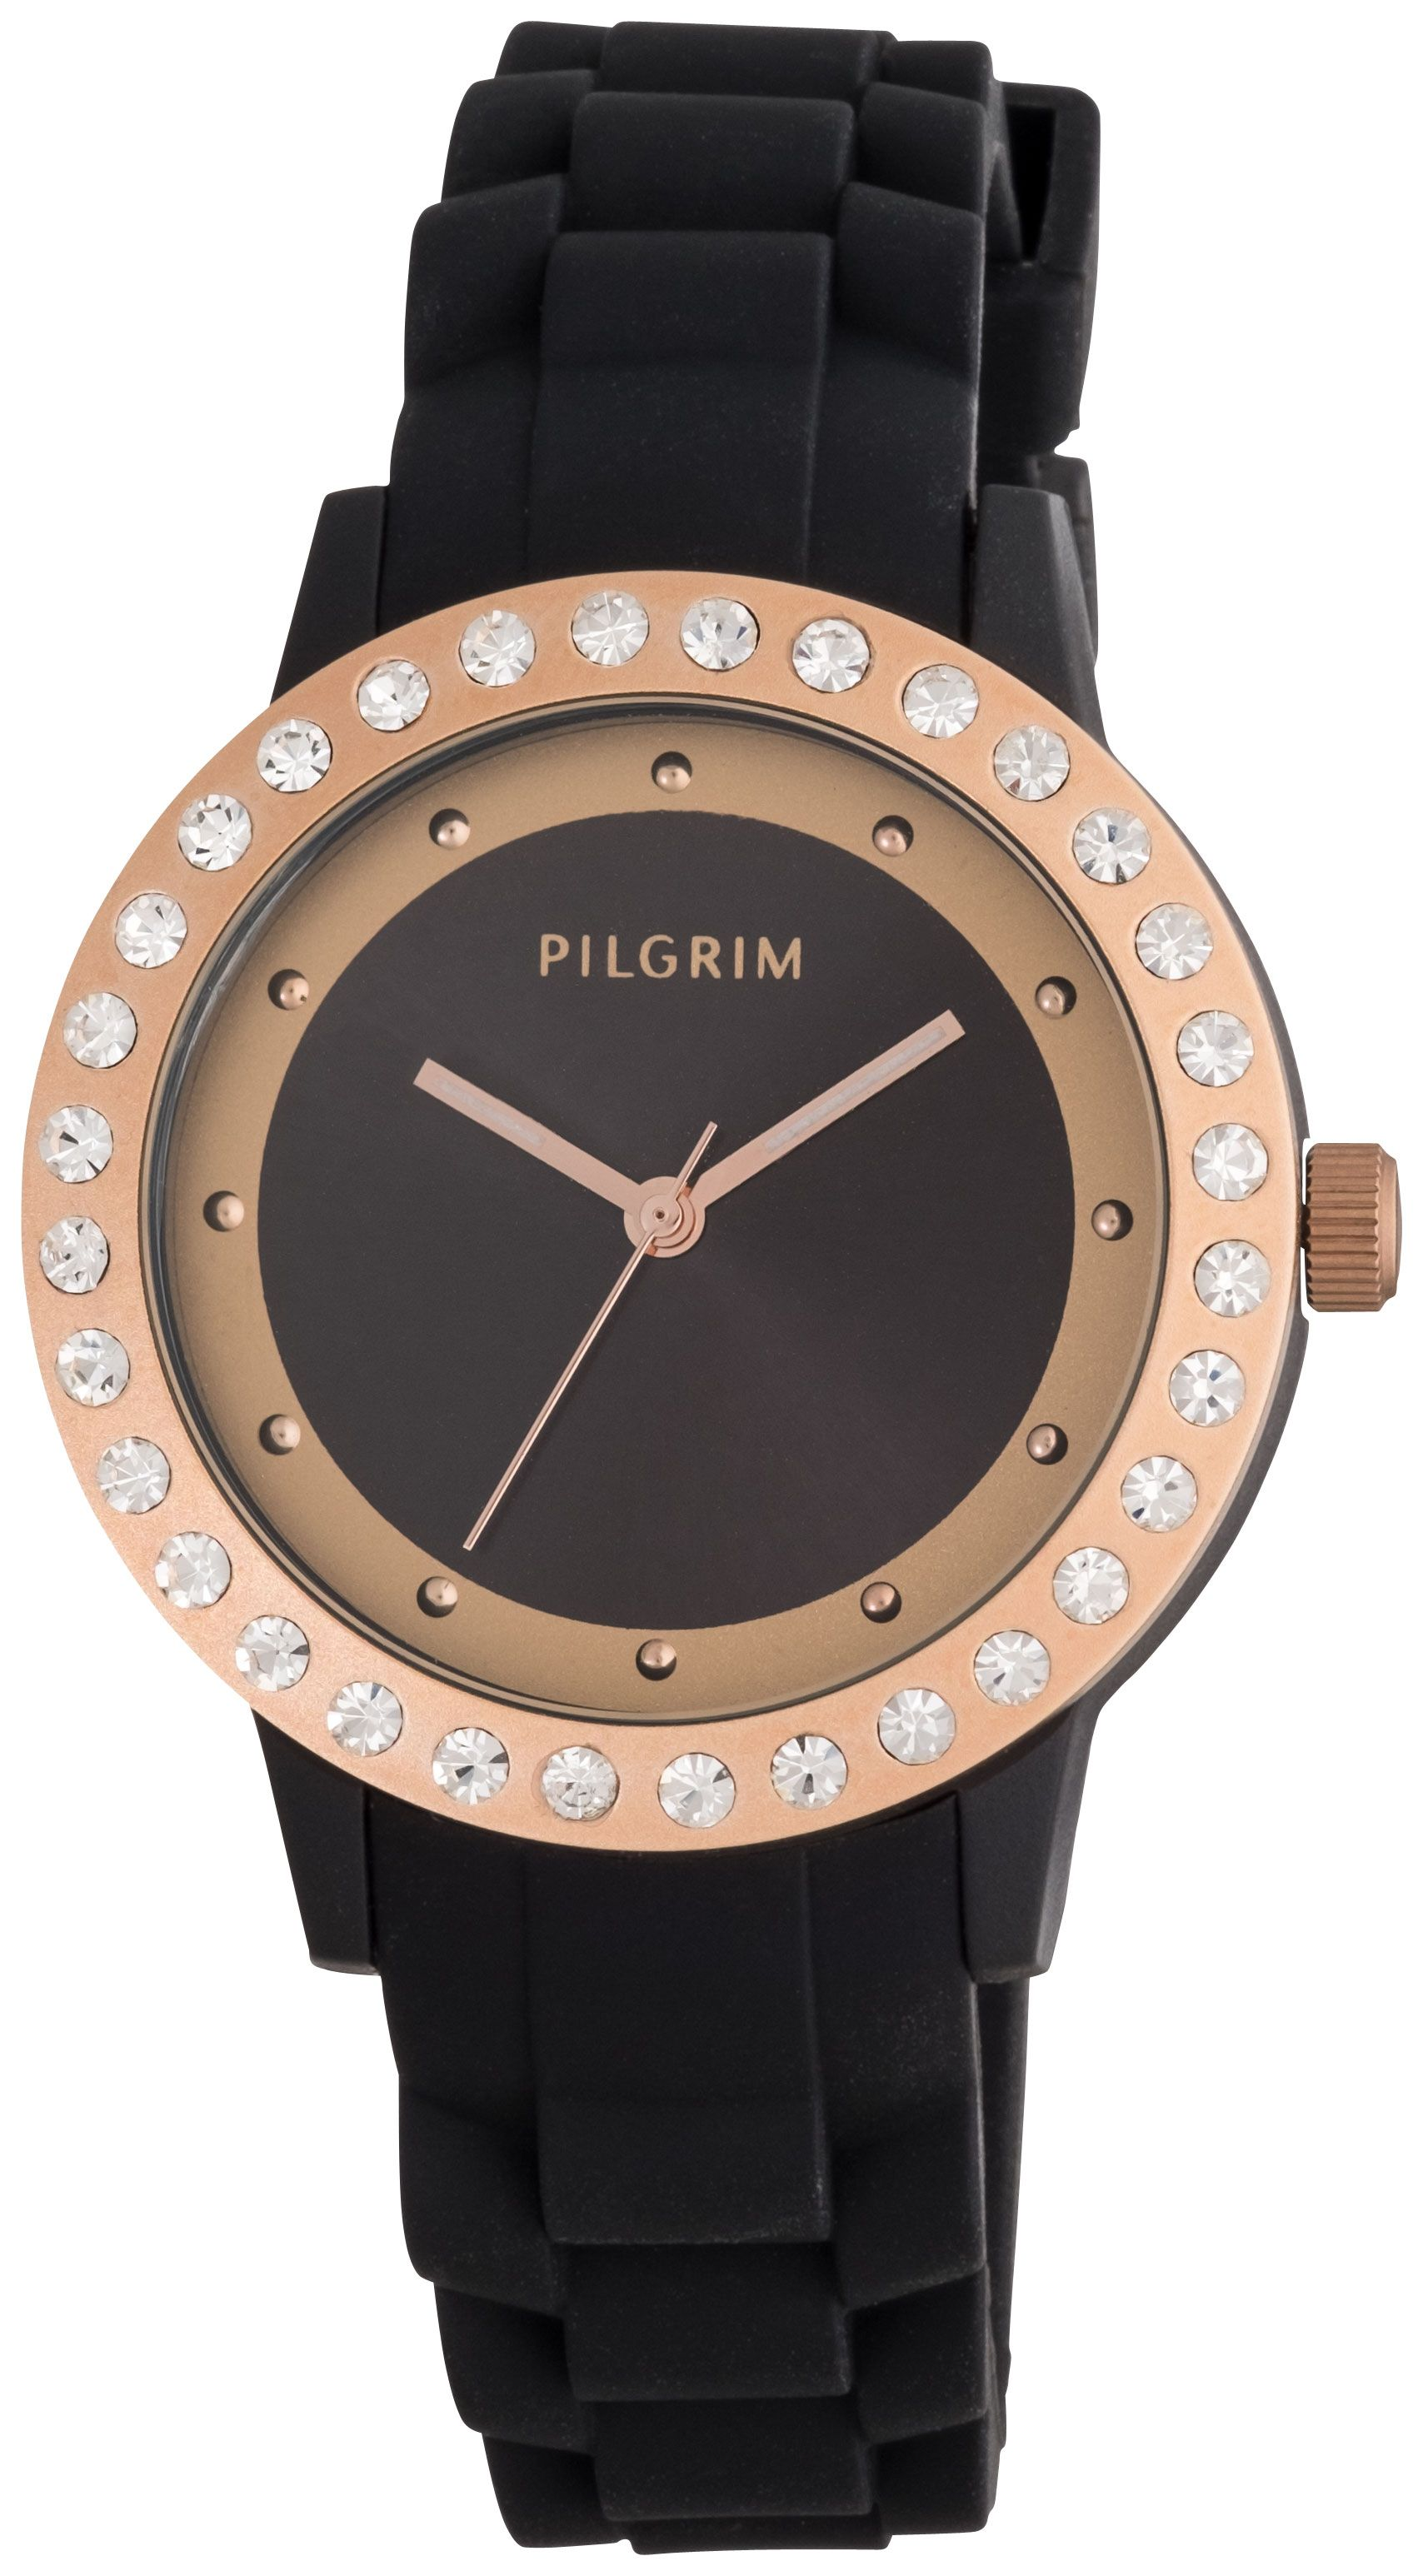 Pilgrim Rose gold plated black silicon watch Black